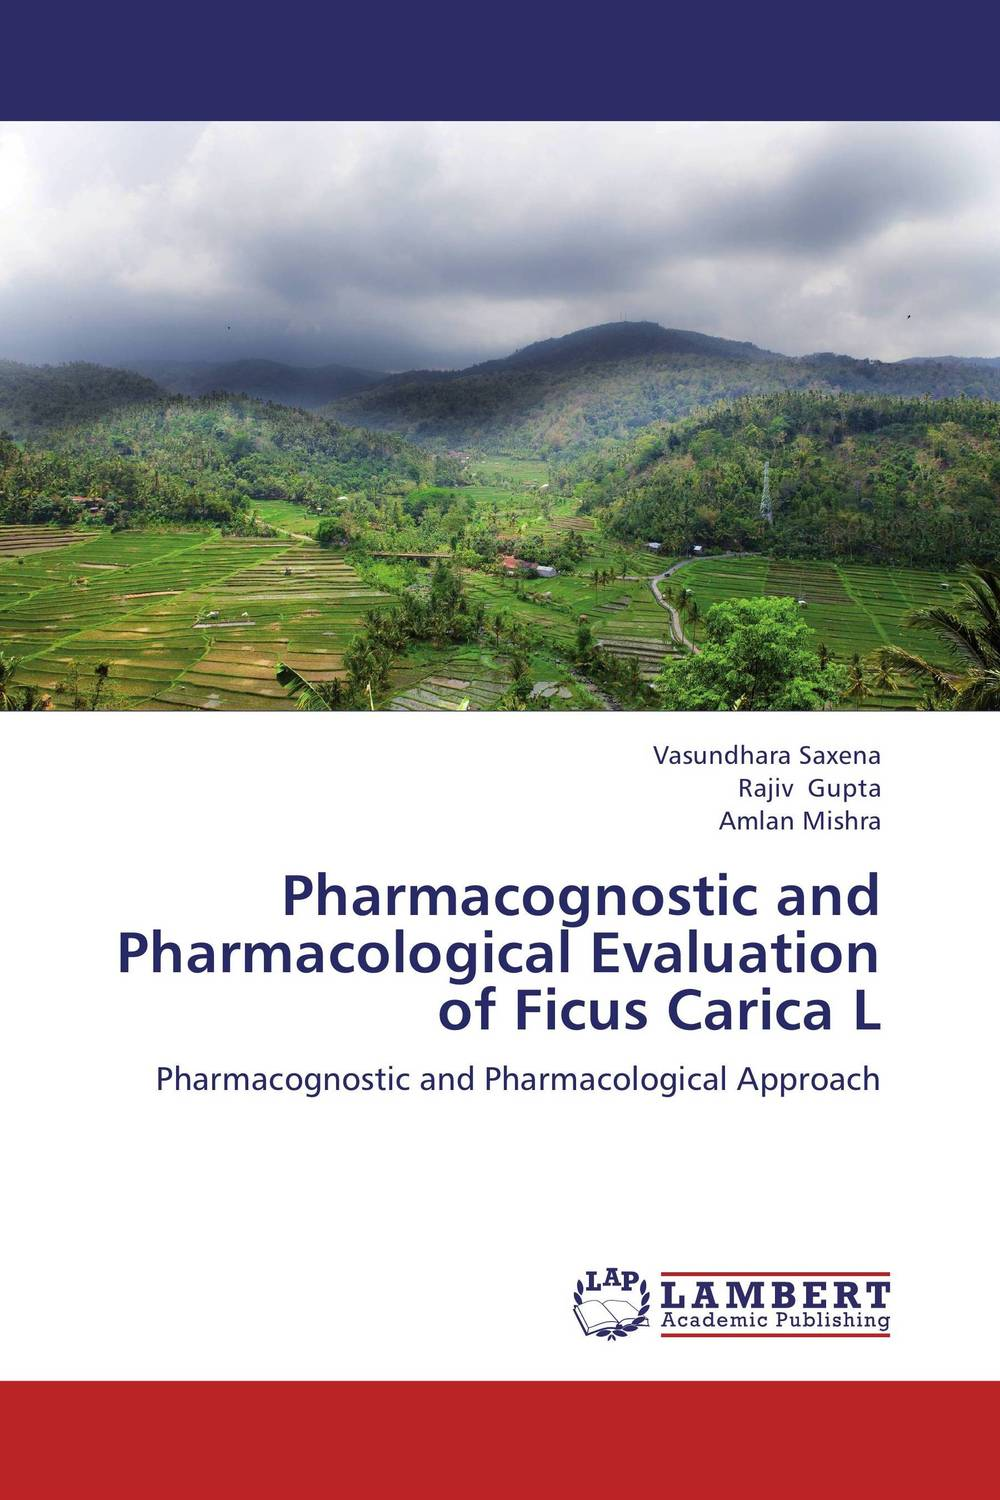 Pharmacognostic and Pharmacological Evaluation of Ficus Carica L md rabiul islam s m ibrahim sumon and farhana lipi phytochemical evaluation of leaves of cymbopogan citratus